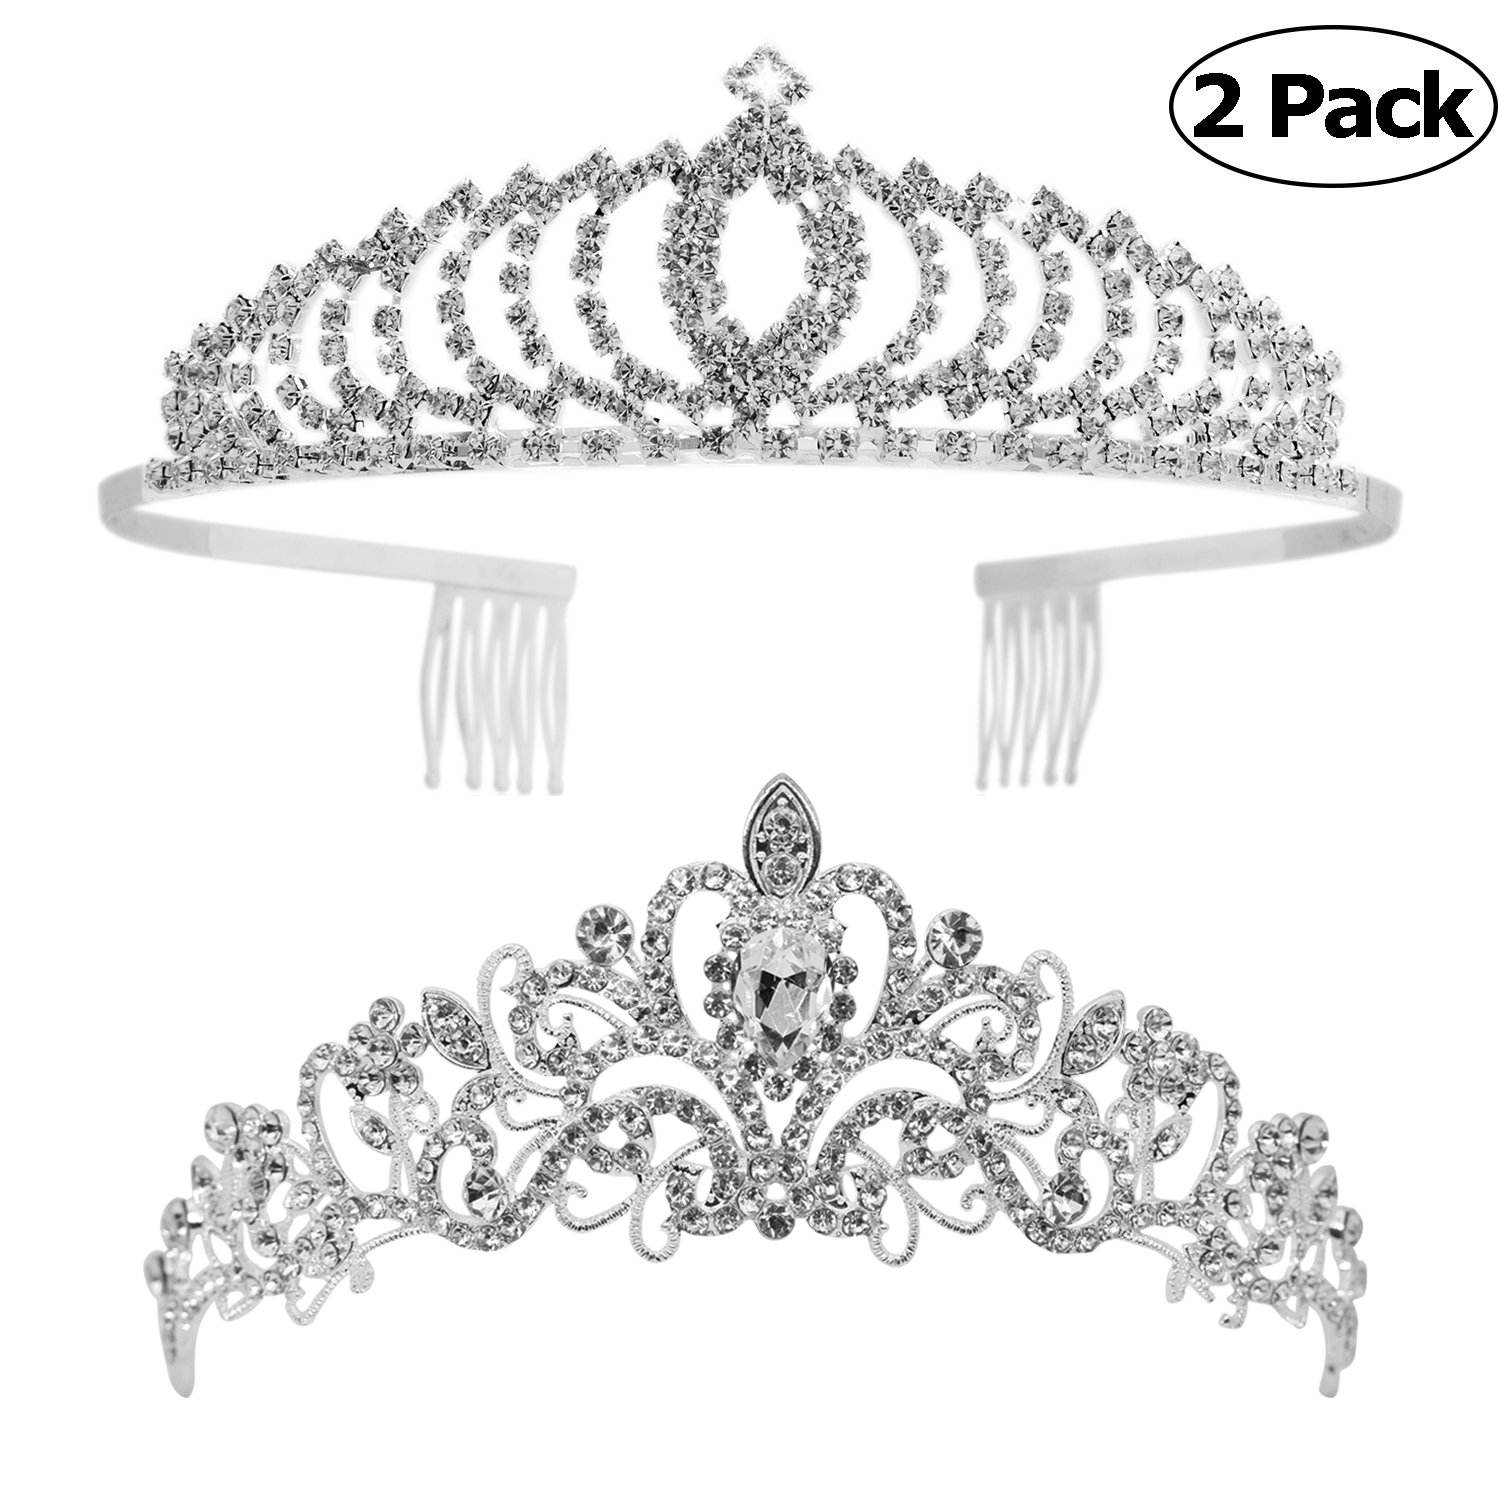 Tiaras and Crowns,Vinsco 2 Pack Crystal Tiara Crown Headband Headpiece Rhinestone Hair Jewelry for Women Ladies Little Girls Bridal Bride Princess Queen Birthday Wedding Pageant Prom Party Sliver